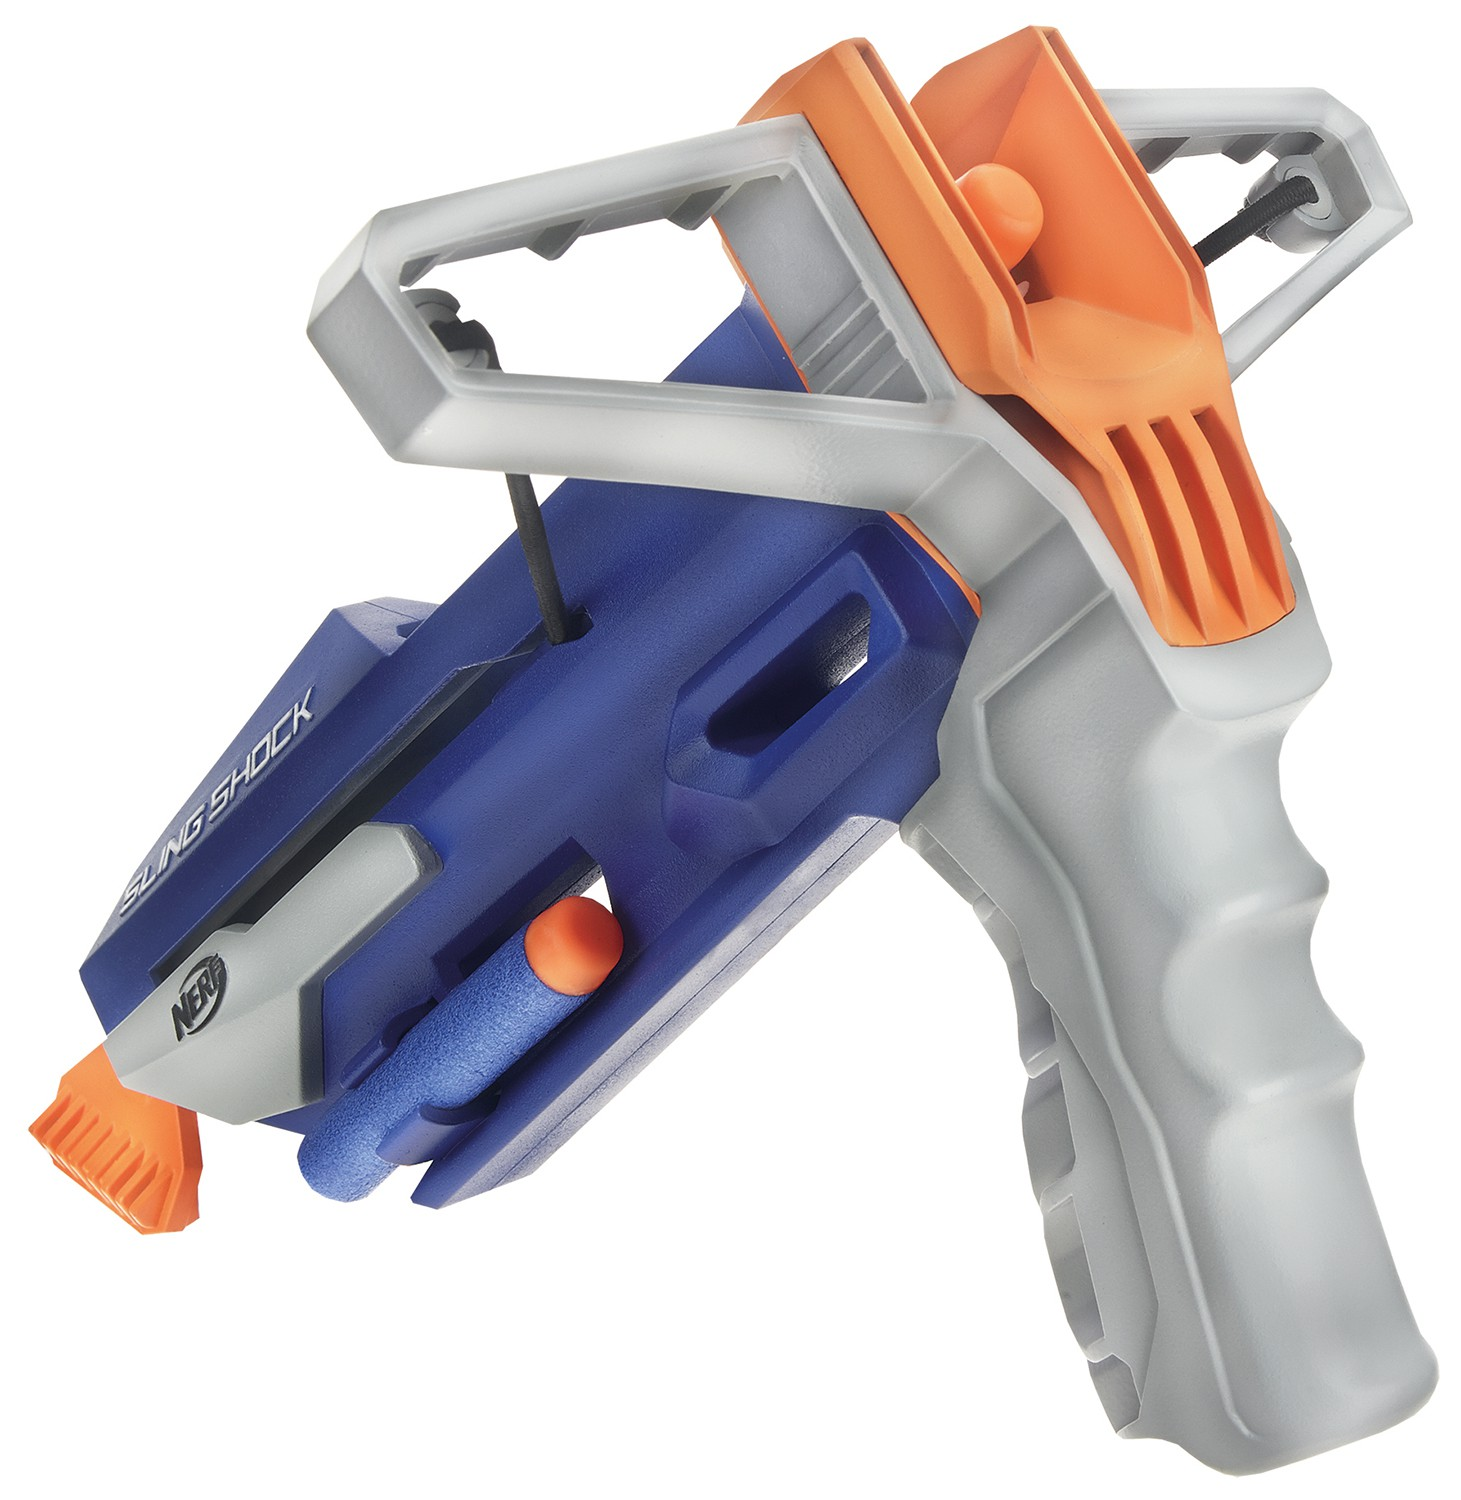 Nerf-N-Strike-Elite-XD-Sling Shock